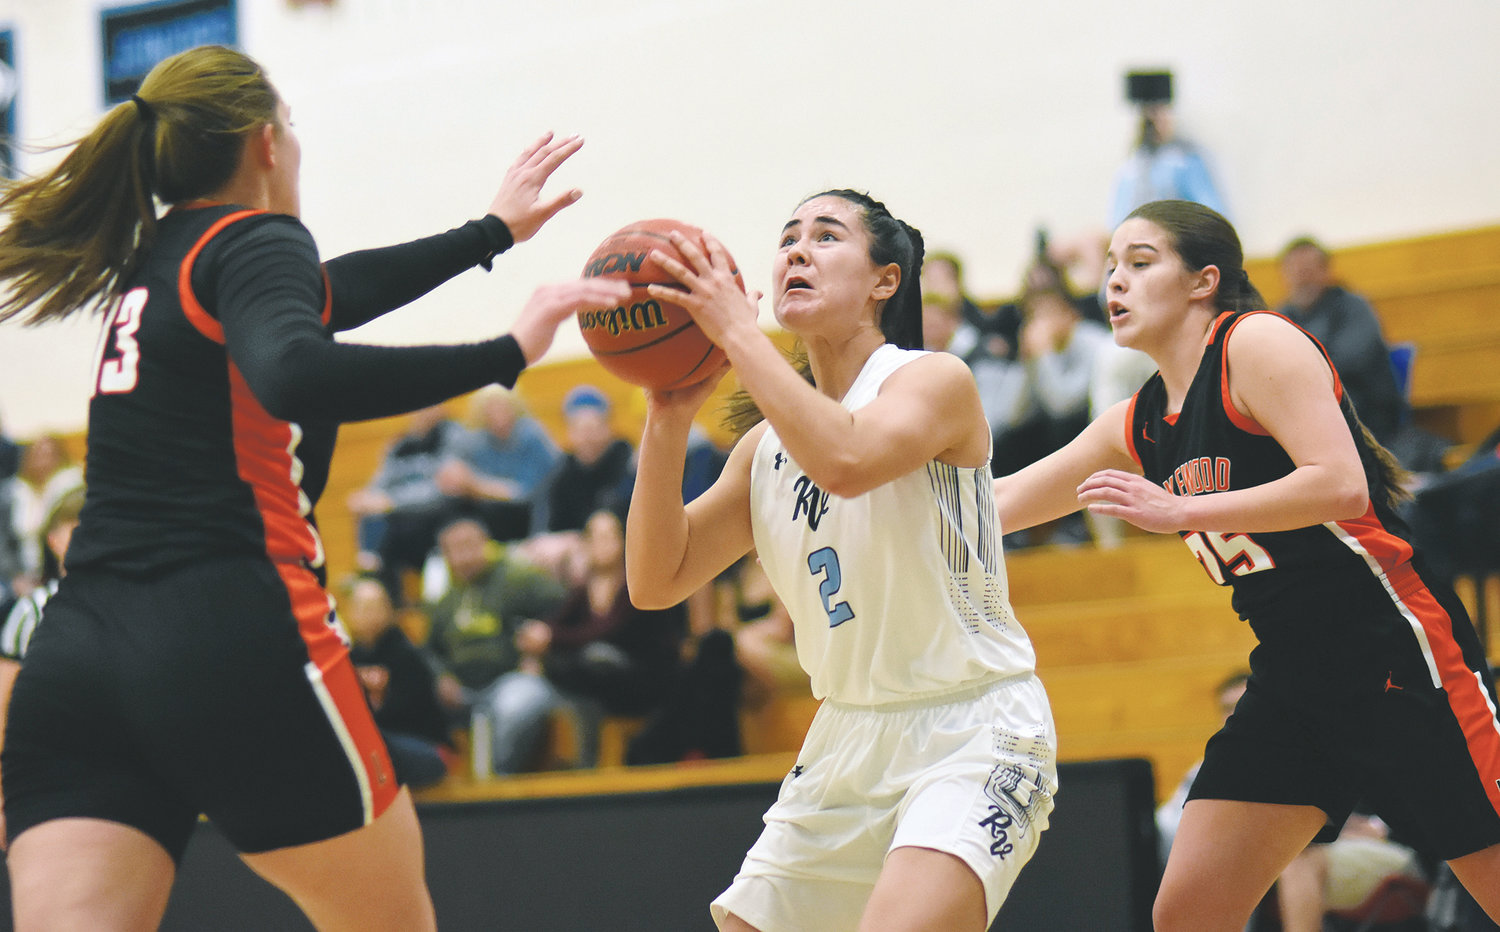 Ralston Valley freshman Saya Sabus (2) attempts to get a shot off between Lakewood seniors Maddy Hubych (13) and Caira Salas (25) during a thrilling girls basketball game Jan. 15 at Ralston Valley High School. The Mustangs held on for a 67-65 meeting between the two teams who have won the last eight Class 5A Jeffco League titles.